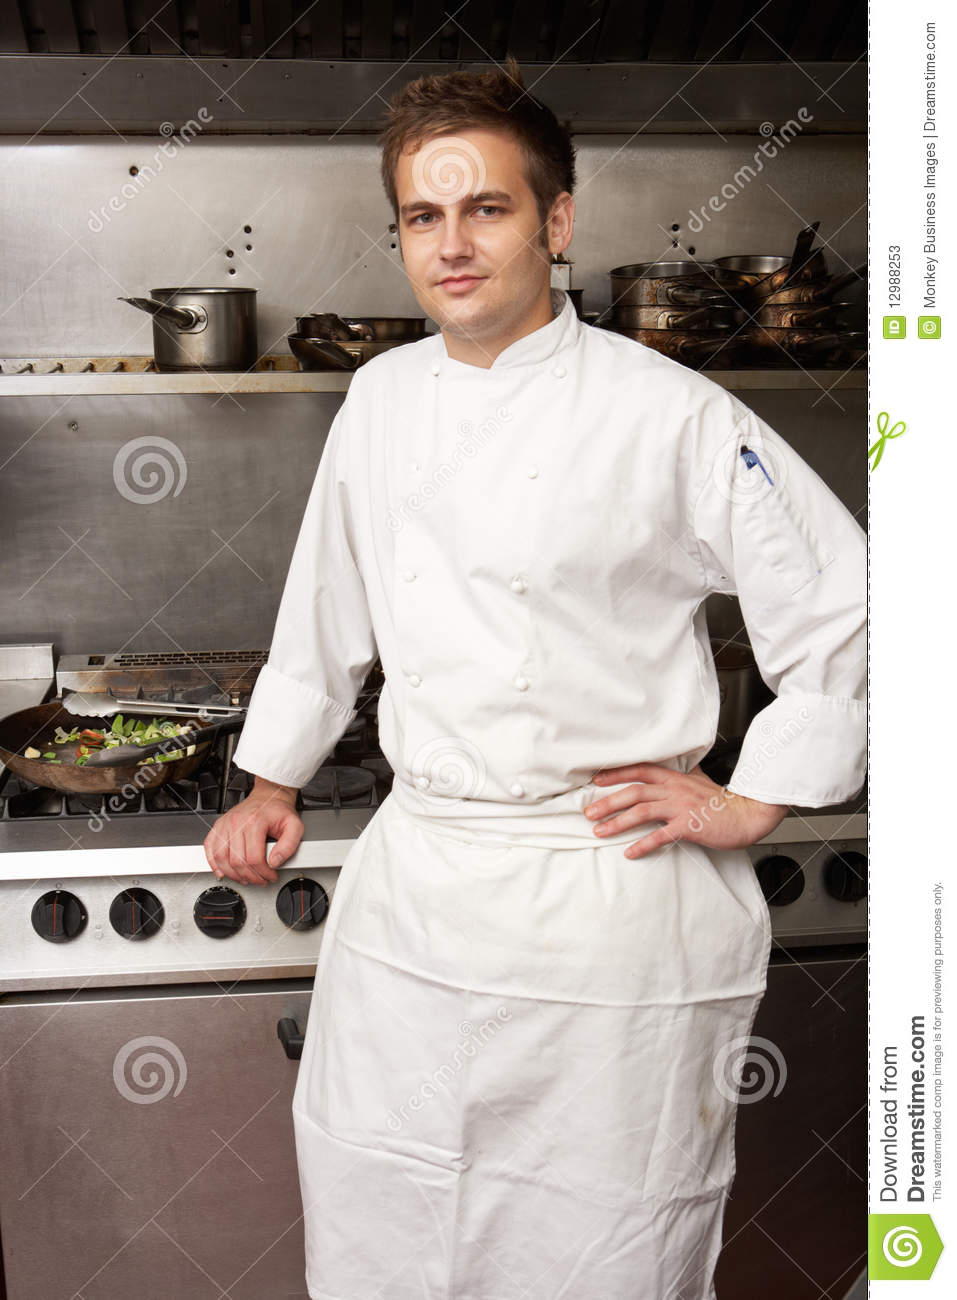 Male Chef Standing Next To Cooker